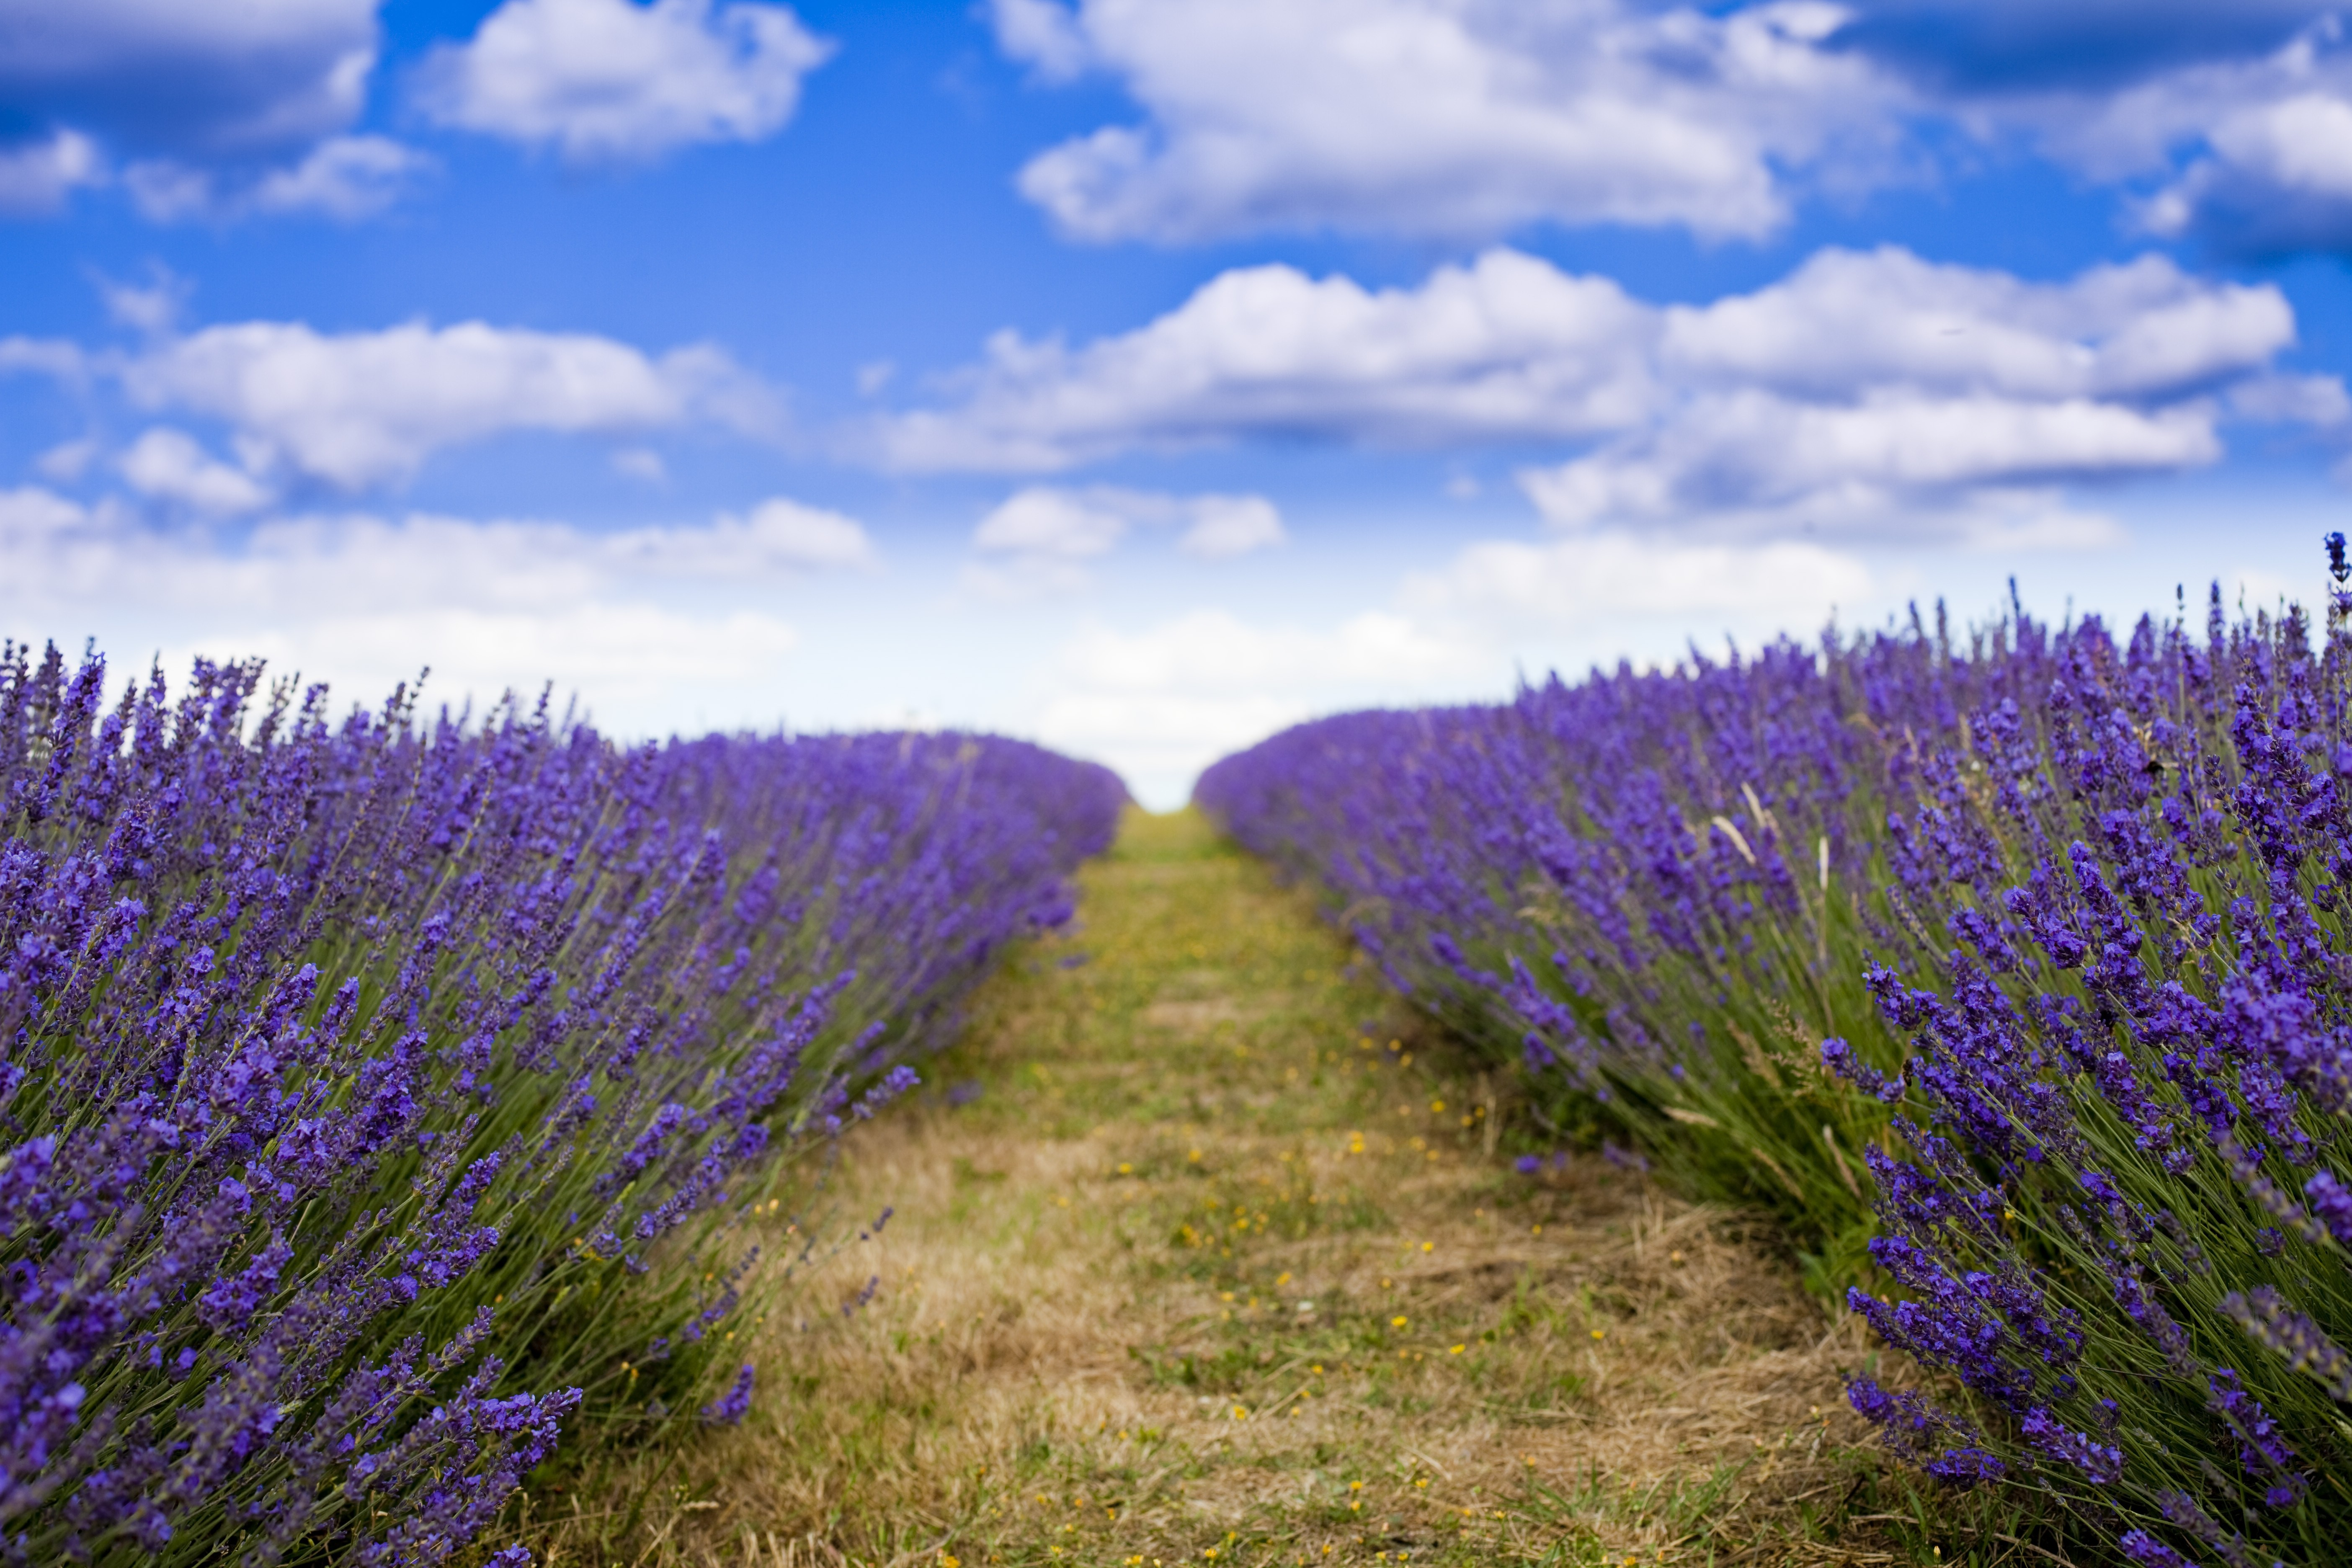 Ice Cream Wallpapers With Quotes Wallpaper Lavender 5k 4k Wallpaper 8k Field Flowers